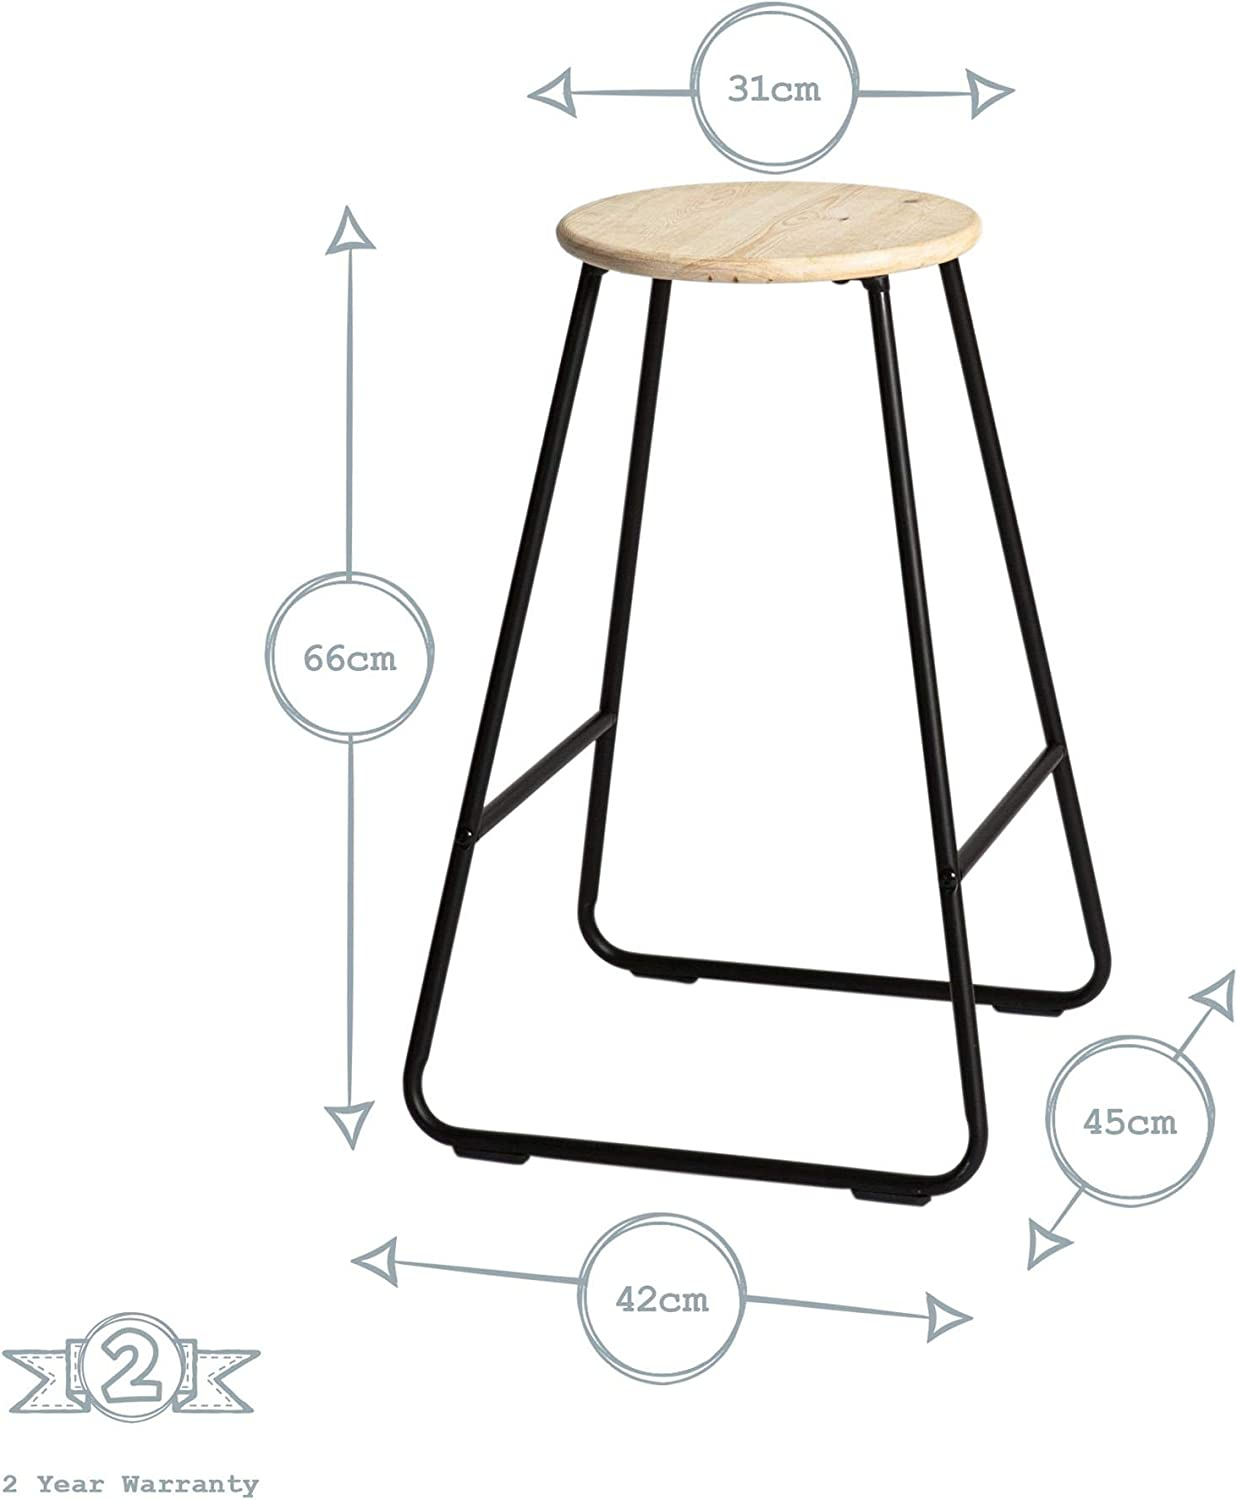 Breakfast Kitchen Island Counter Dining Chair with Footrest Black//Pine Harbour Housewares Wooden Bar Stool